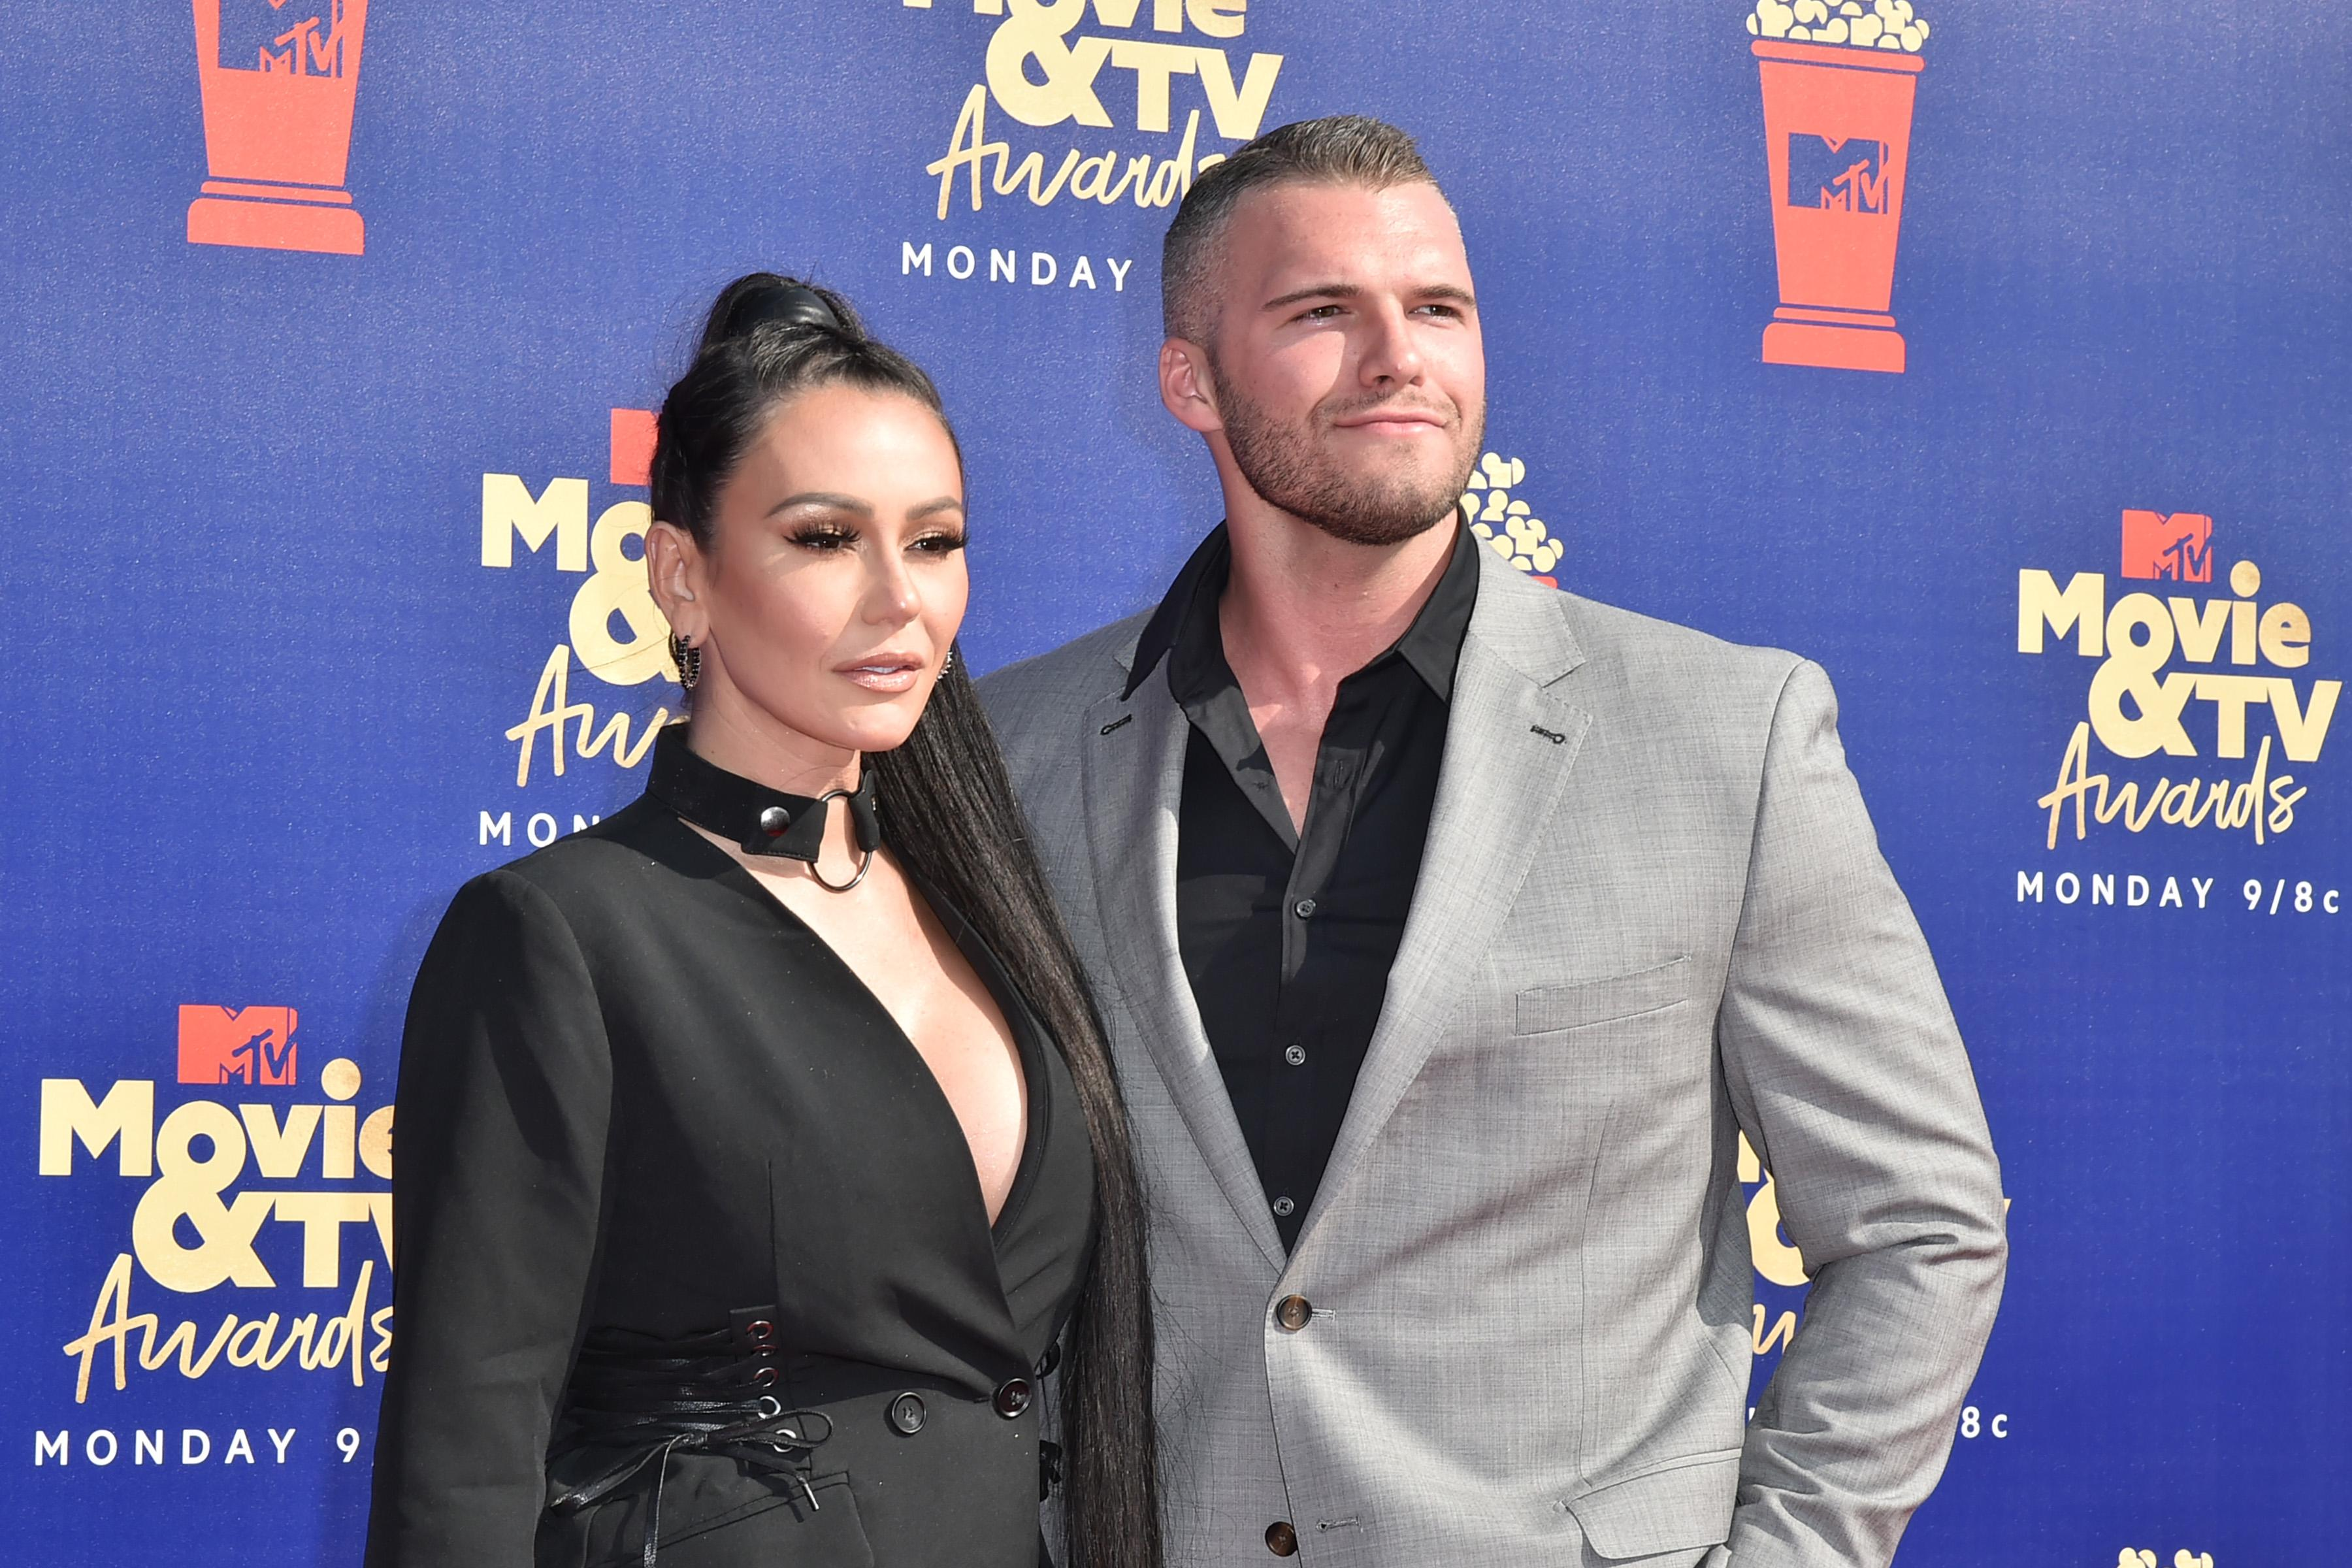 JWoww dumps boyfriend after he gets handsy with Angelina on 'Jersey Shore': 'I feel disrespected'